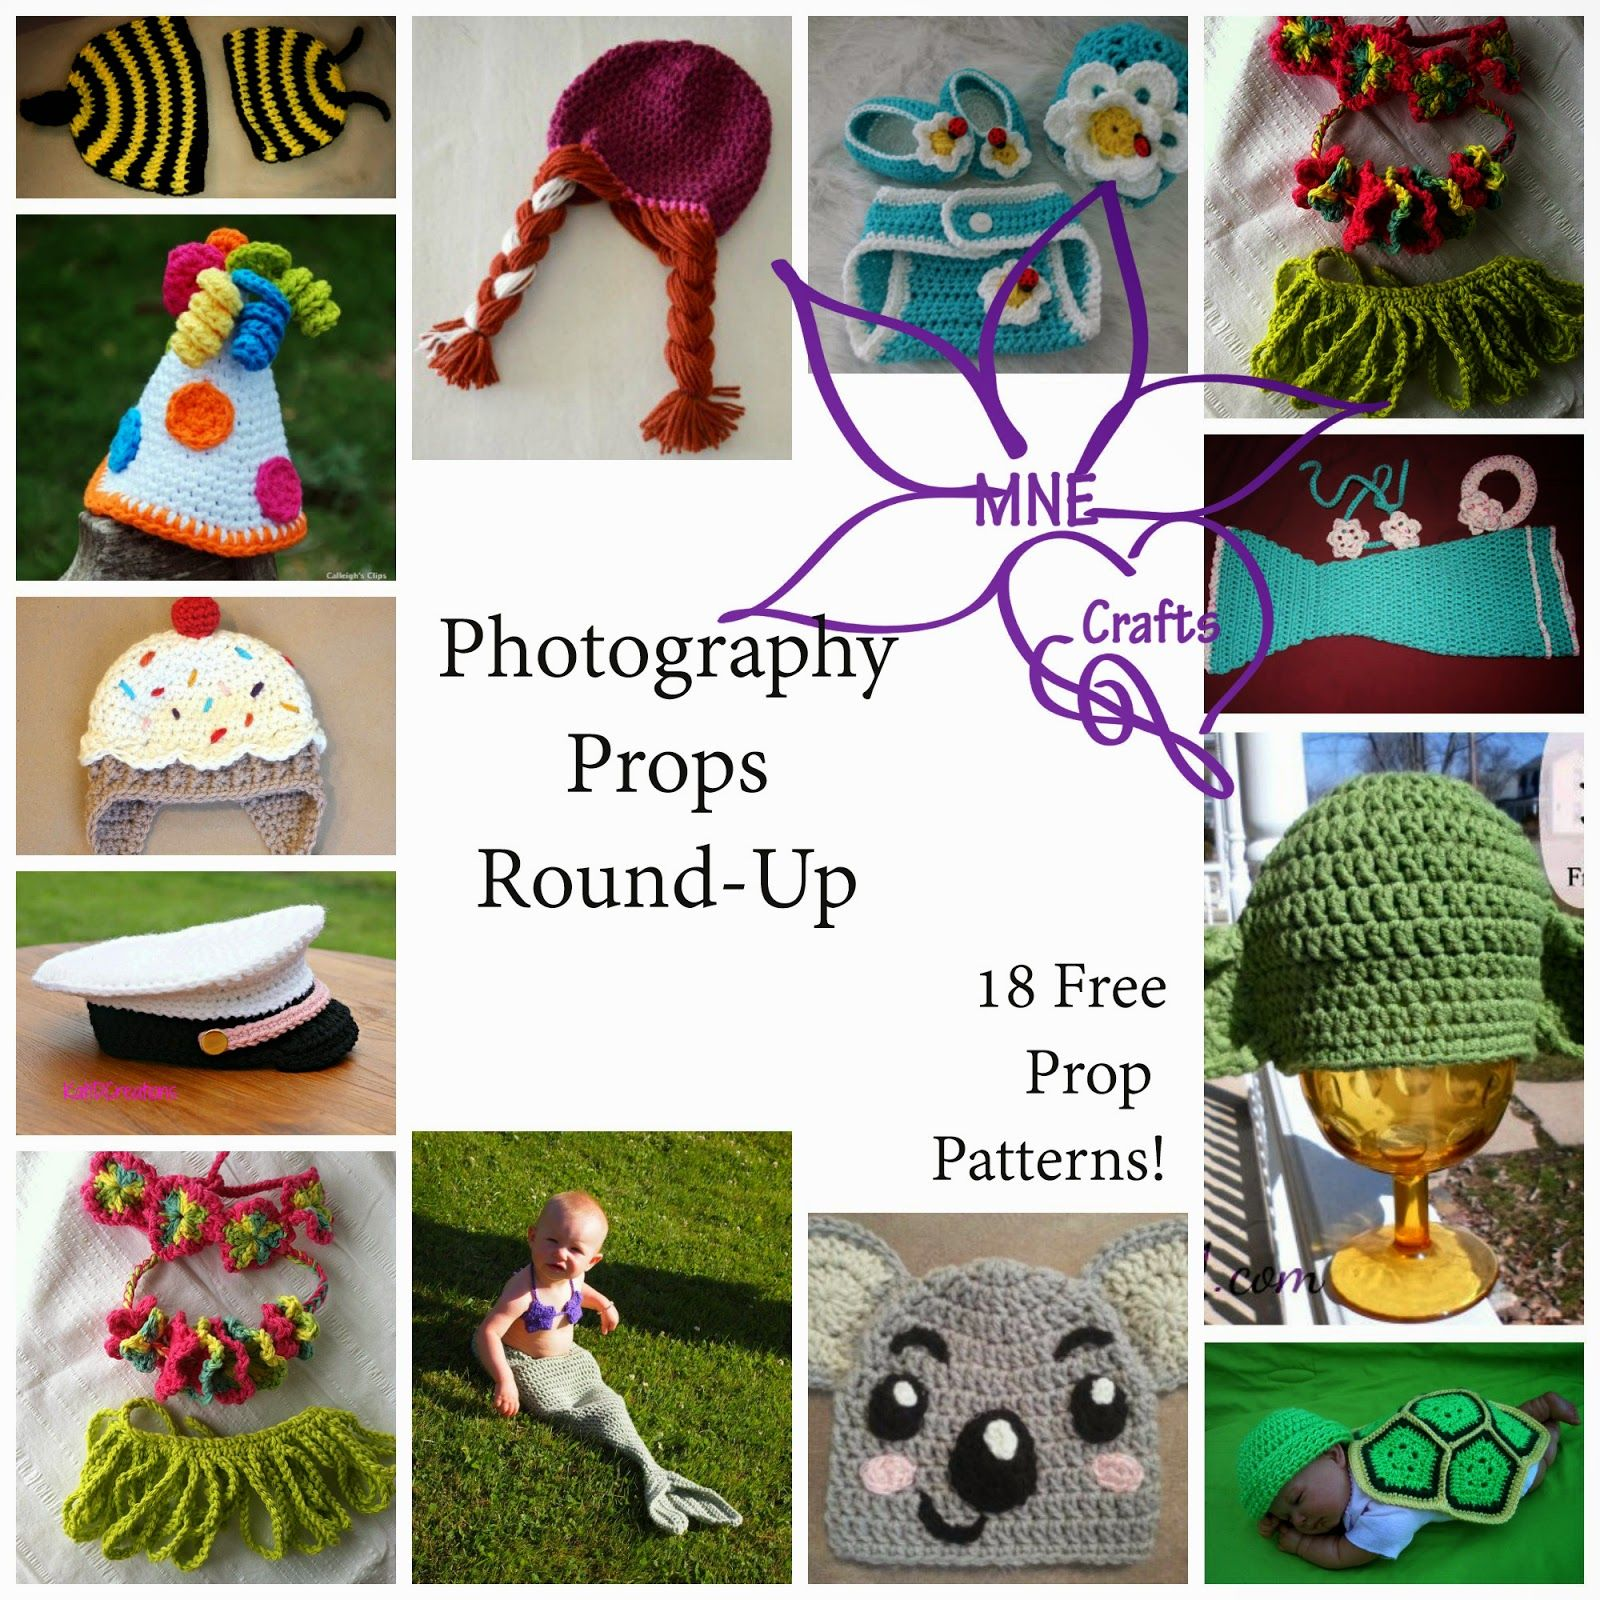 MNE Crafts: Photography Props Round Up - 18 Free Patterns | Crochet ...